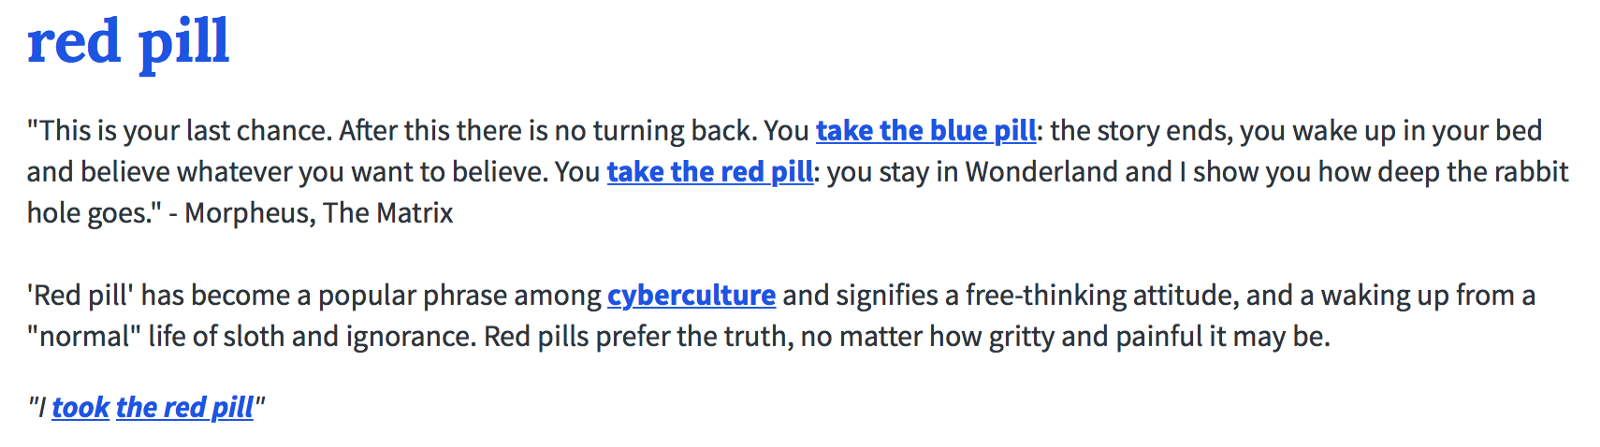 red pill urban dictionary